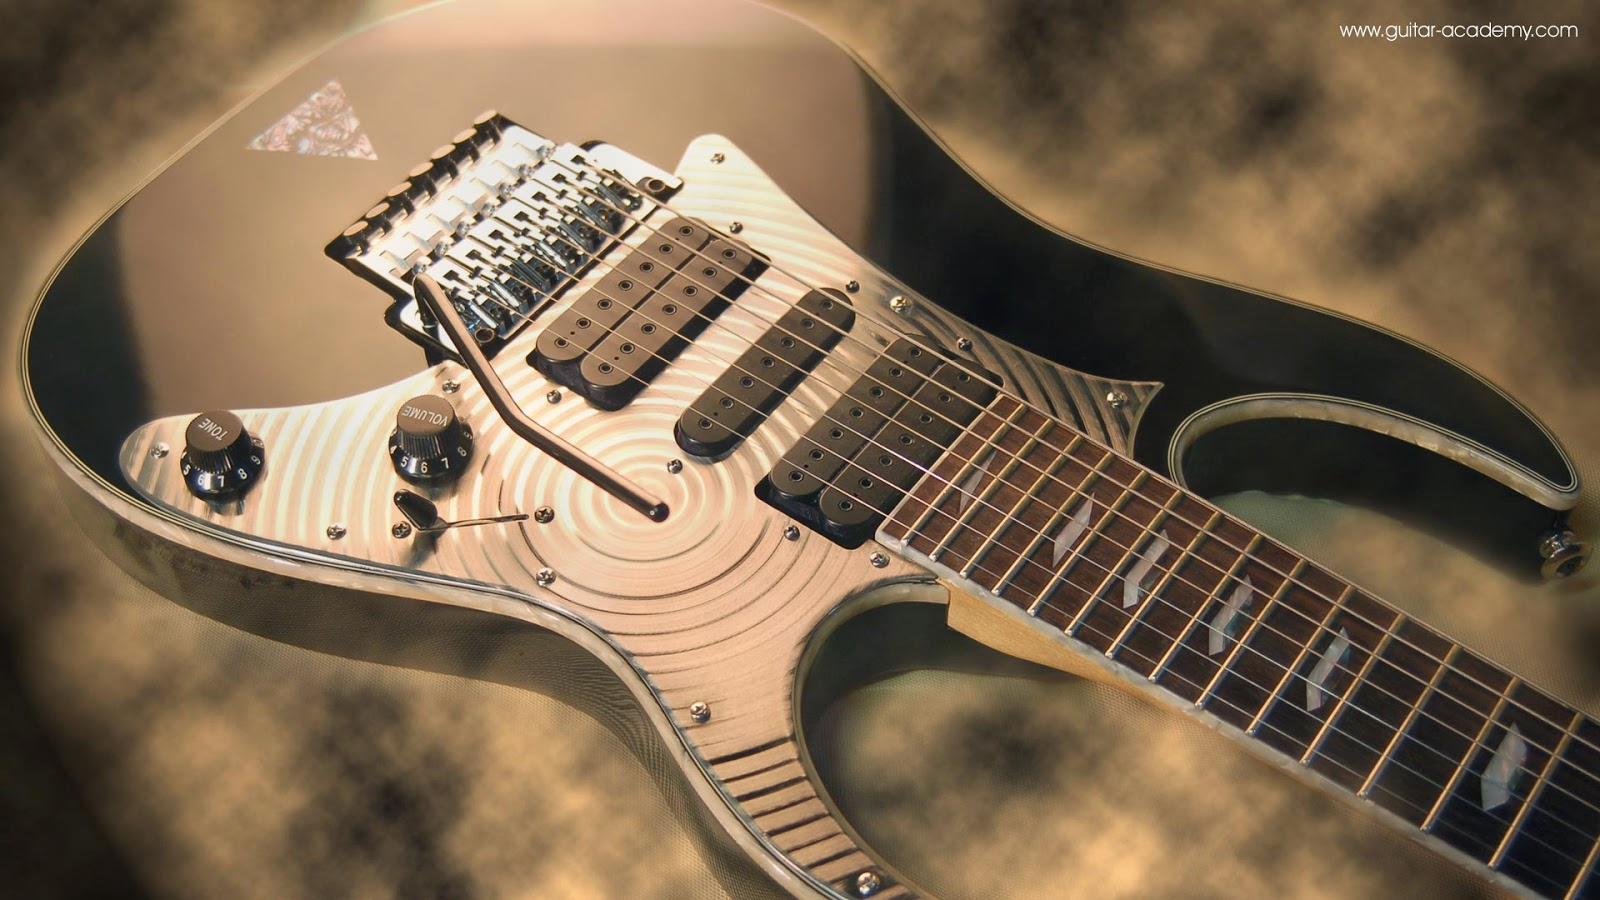 35 Guitar Wallpapers | Most beautiful places in the world